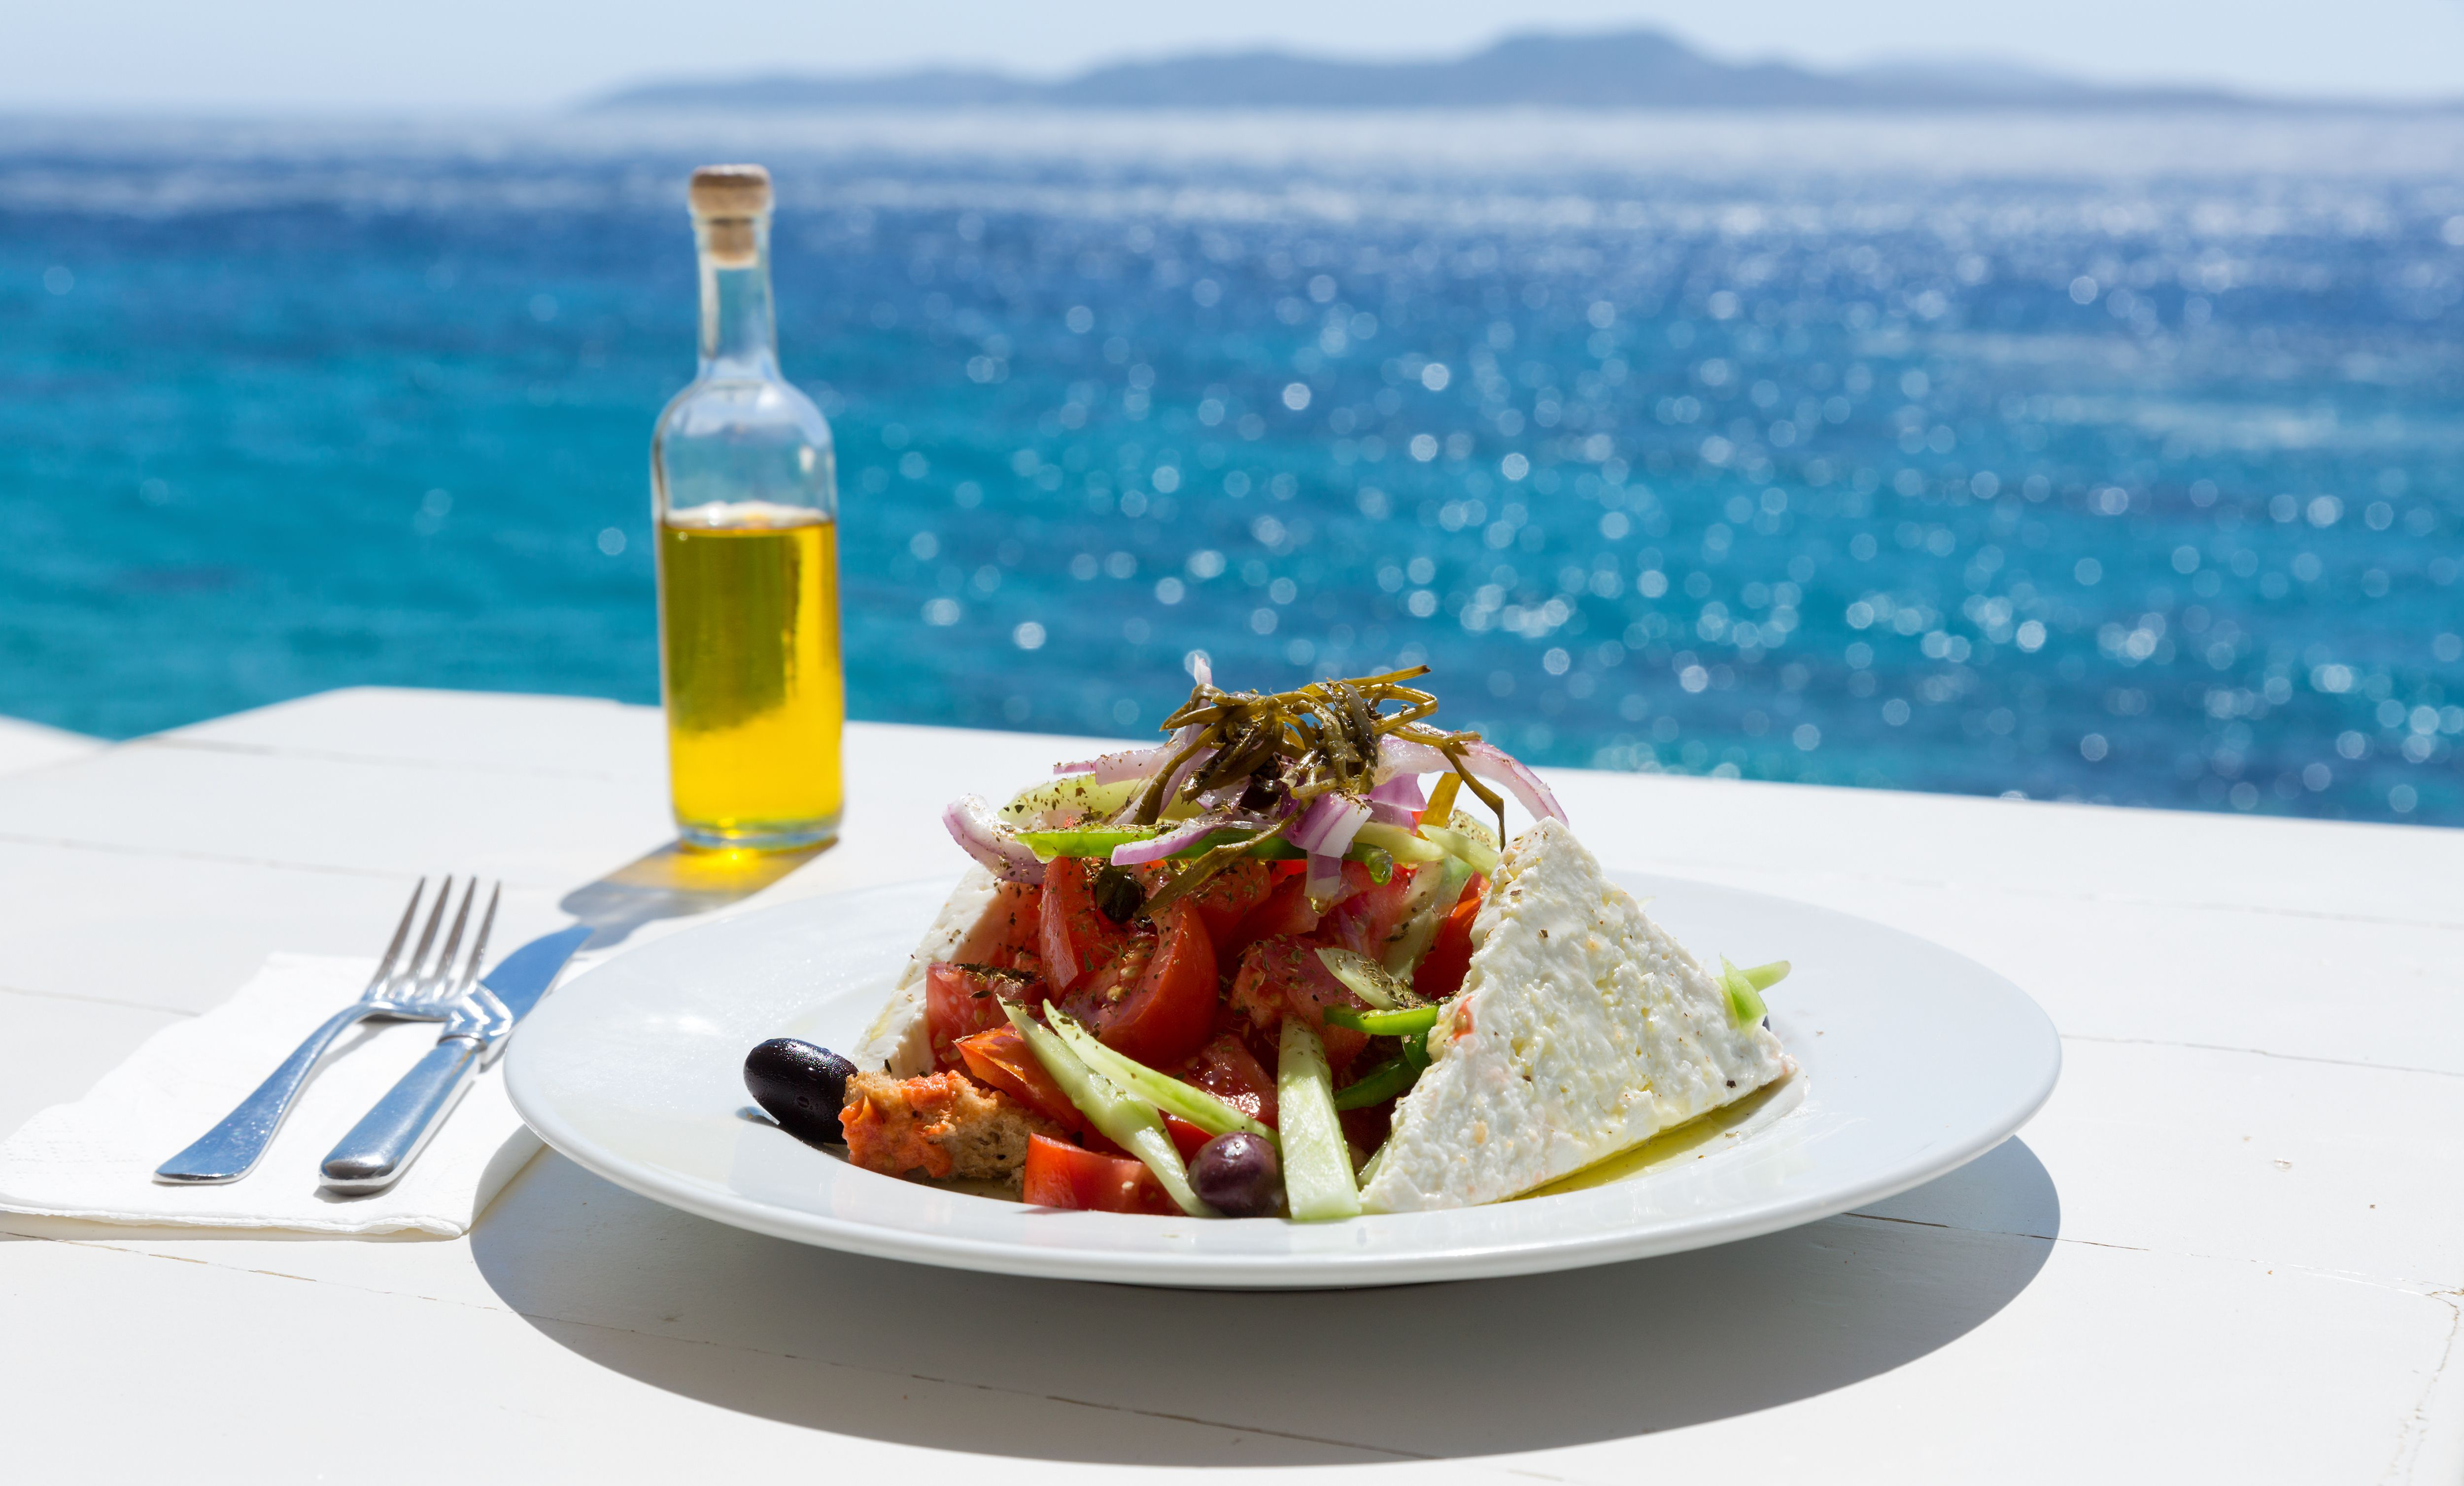 Seafood salad and olive oil by the ocean.   Source: Shutterstock